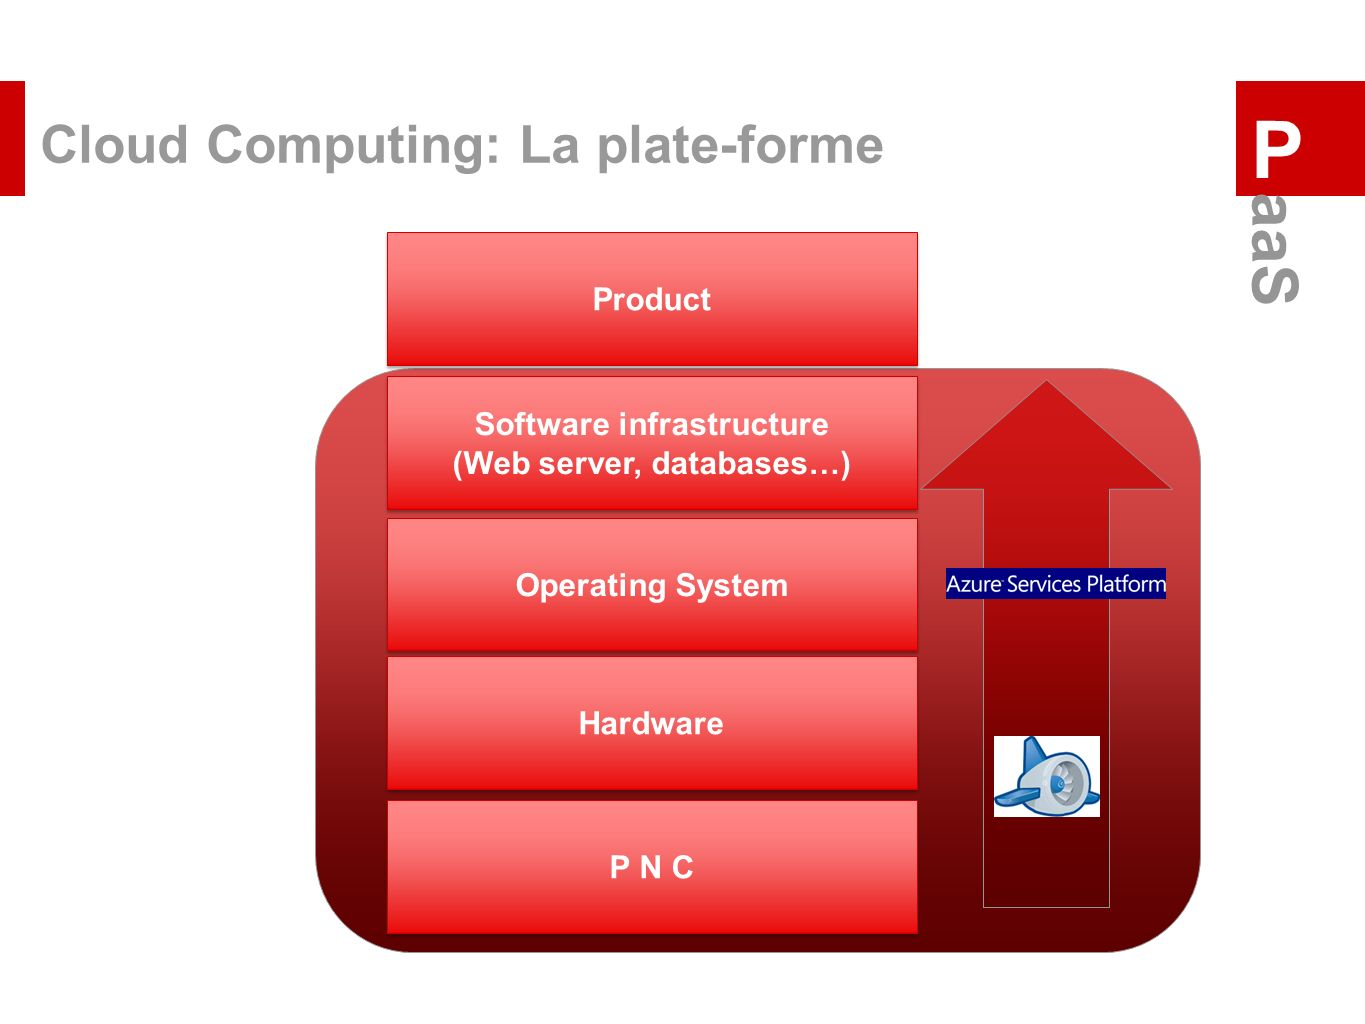 Cloud Computing: La plate-forme